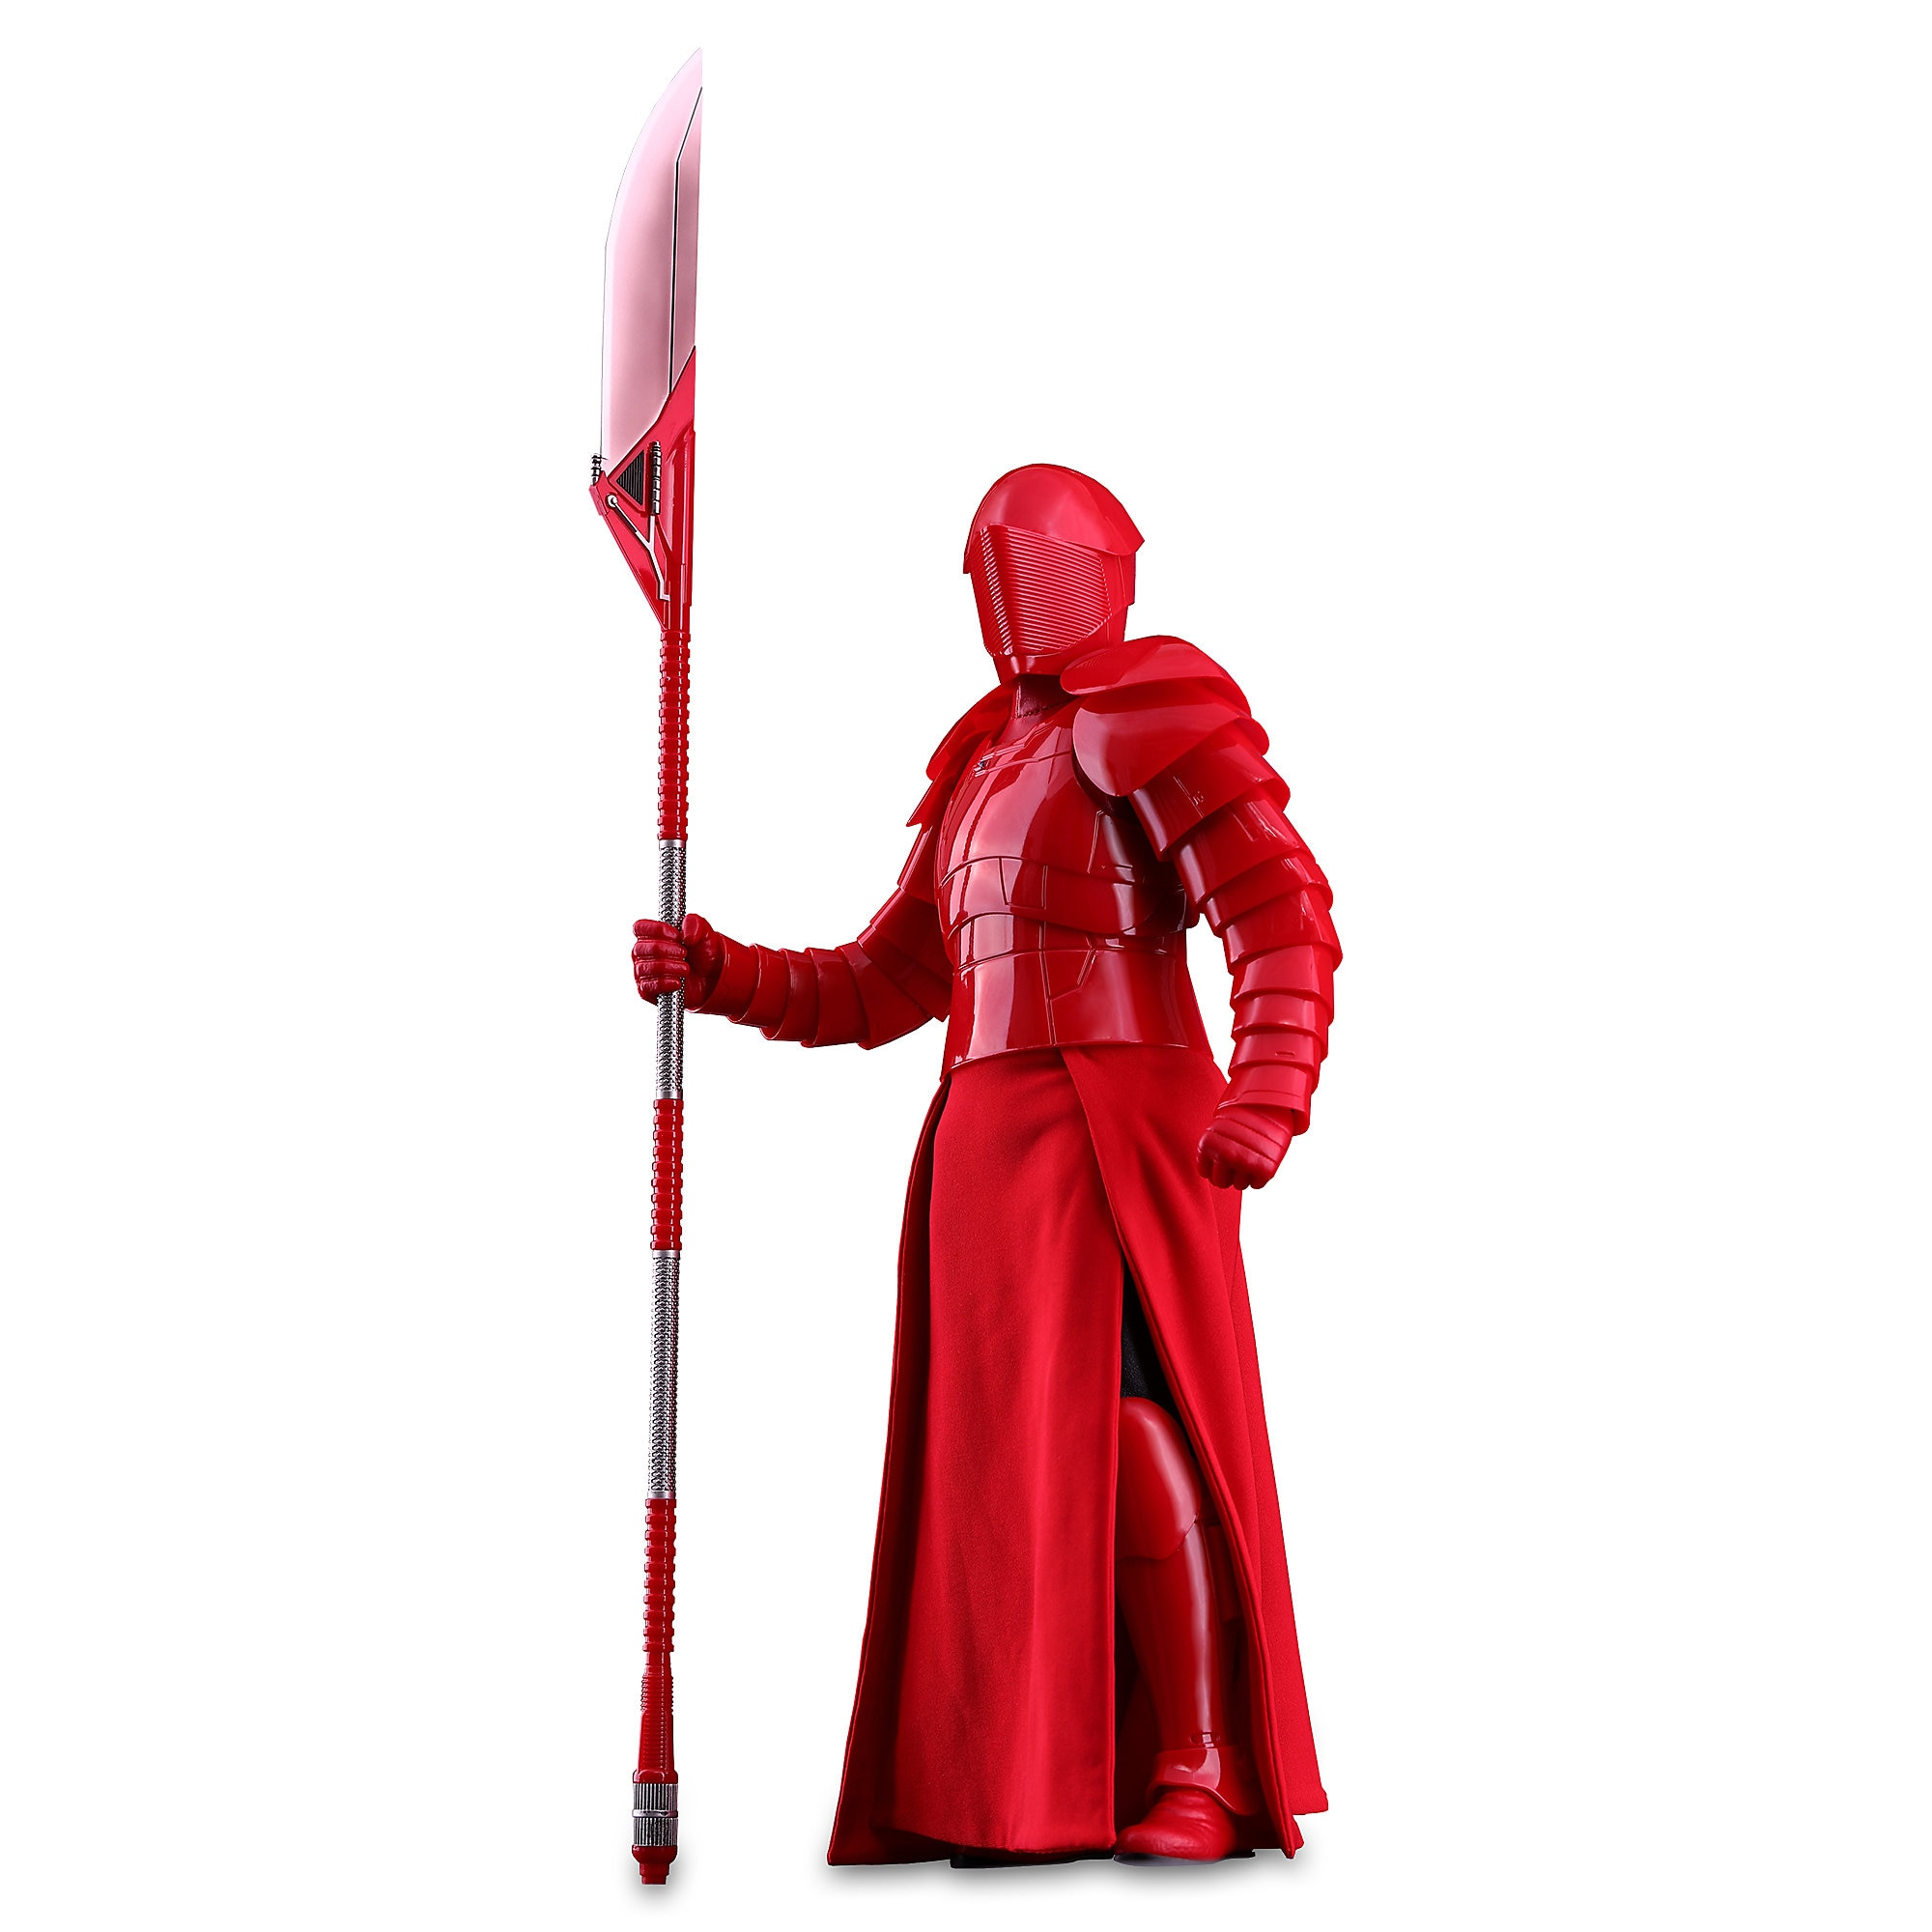 Praetorian Guard with Heavy Blade Sixth Scale Figure by Sideshow Collectibles